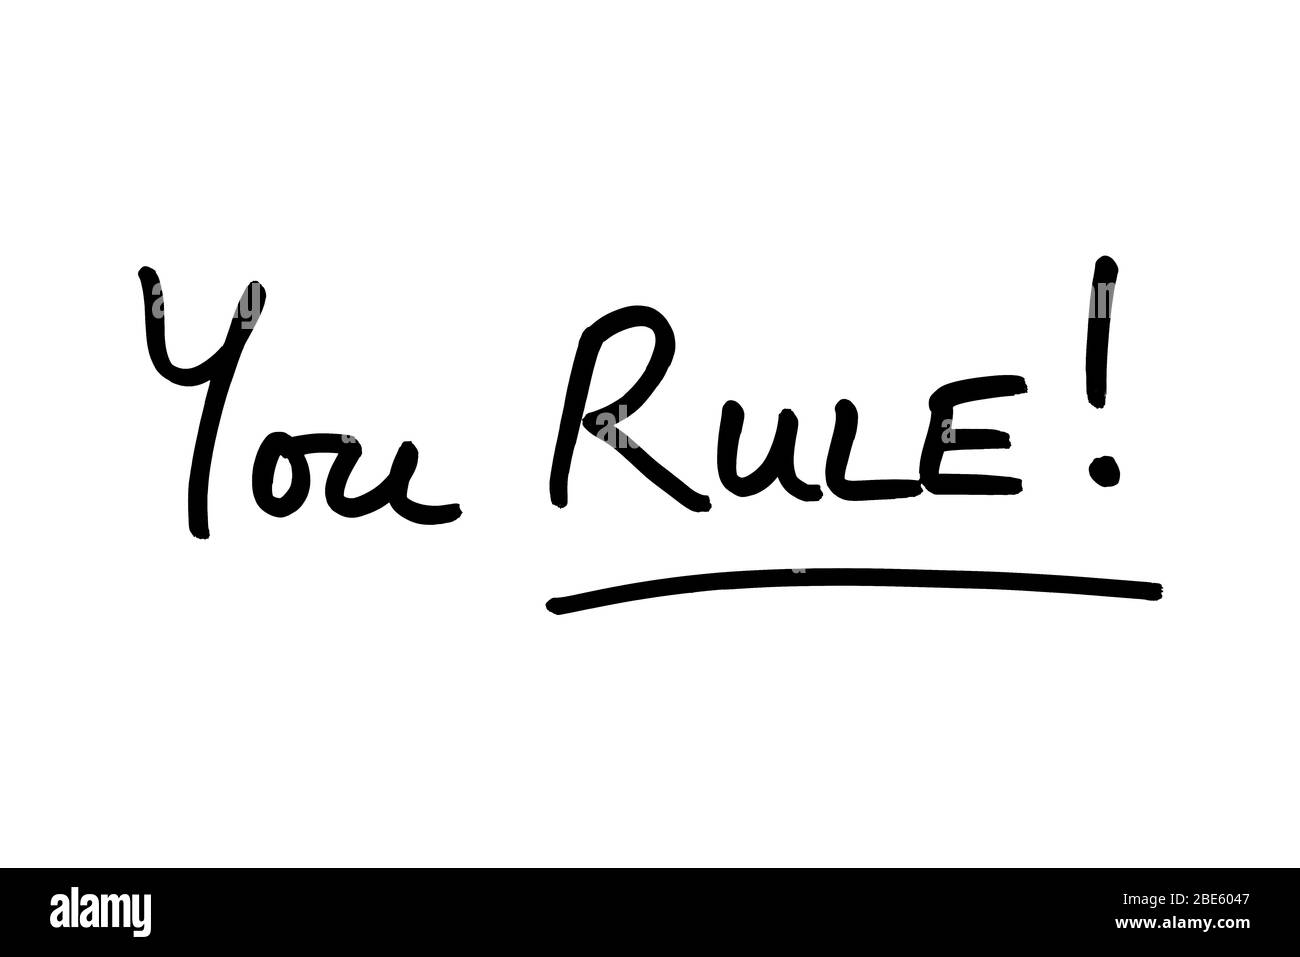 You RULE! handwritten on a white background. Stock Photo